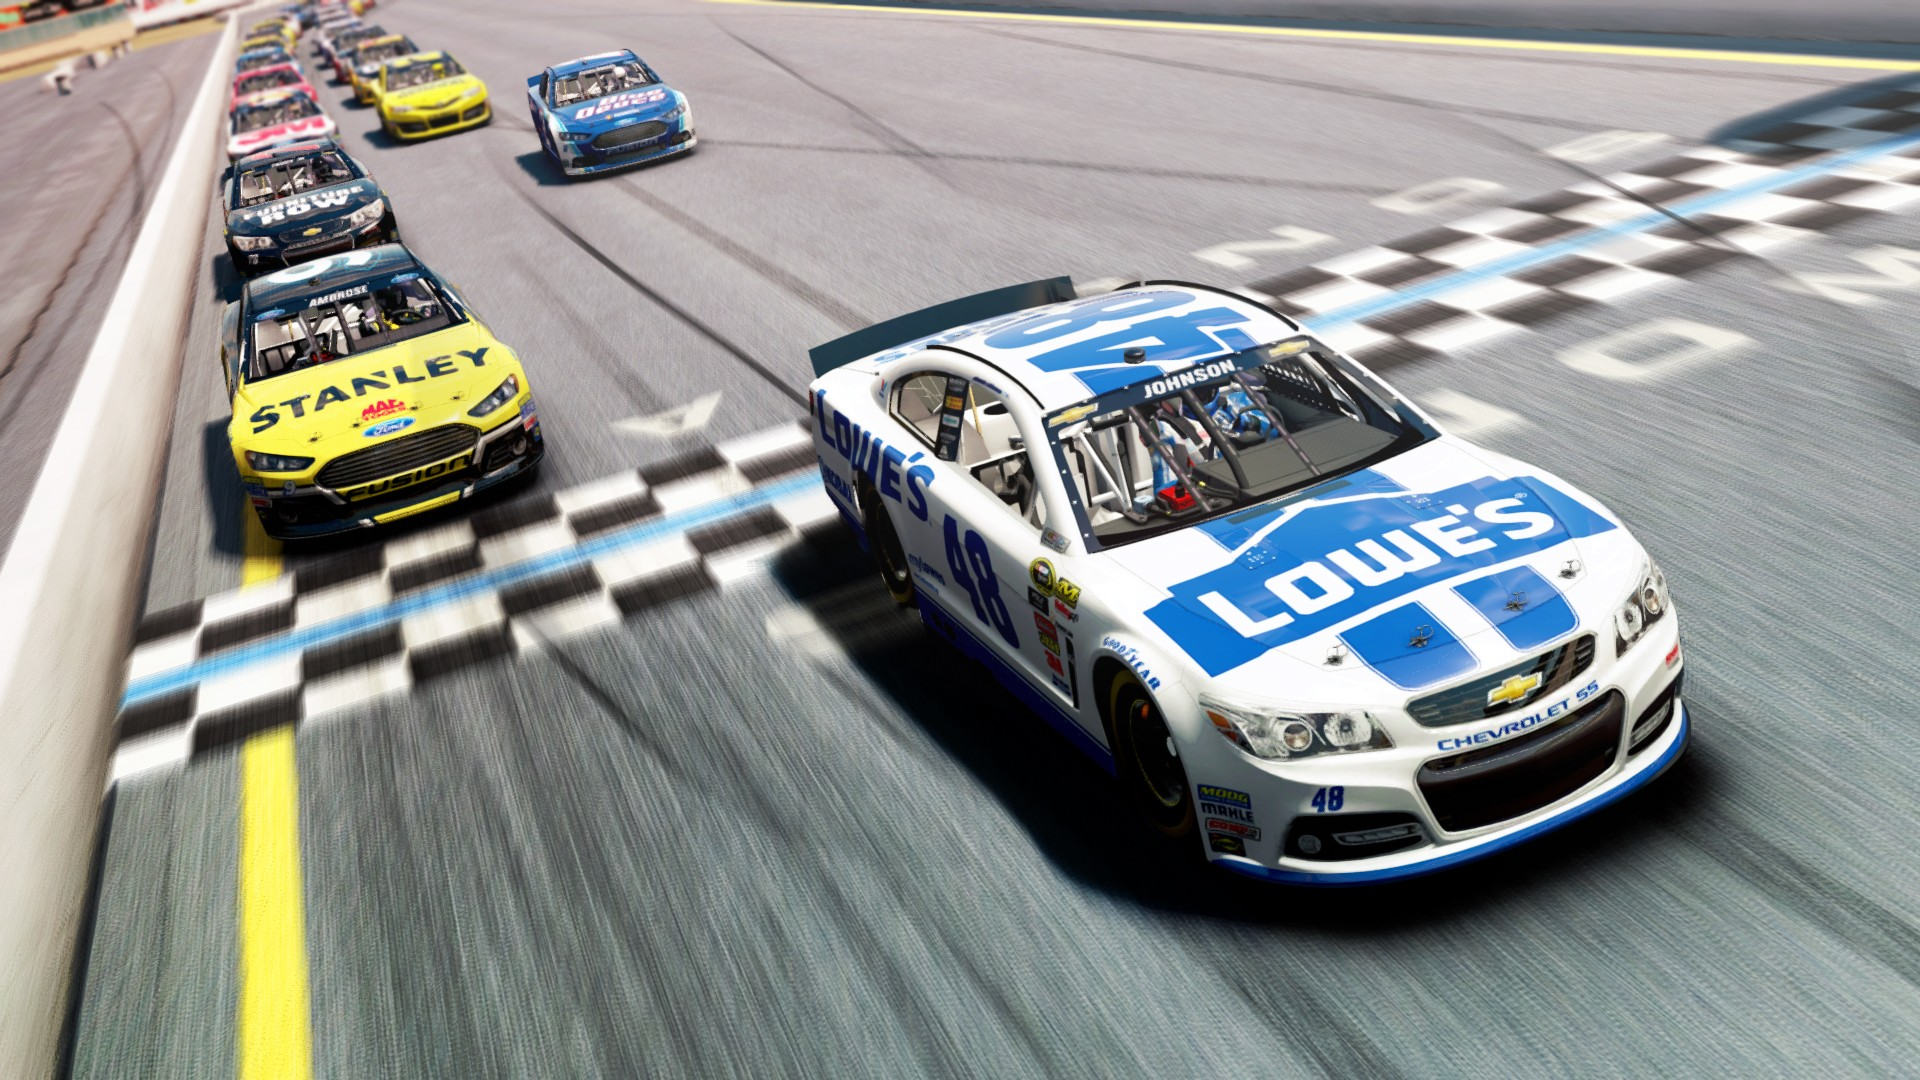 UPDATE: NASCAR 15 Patch Available Now For PlayStation